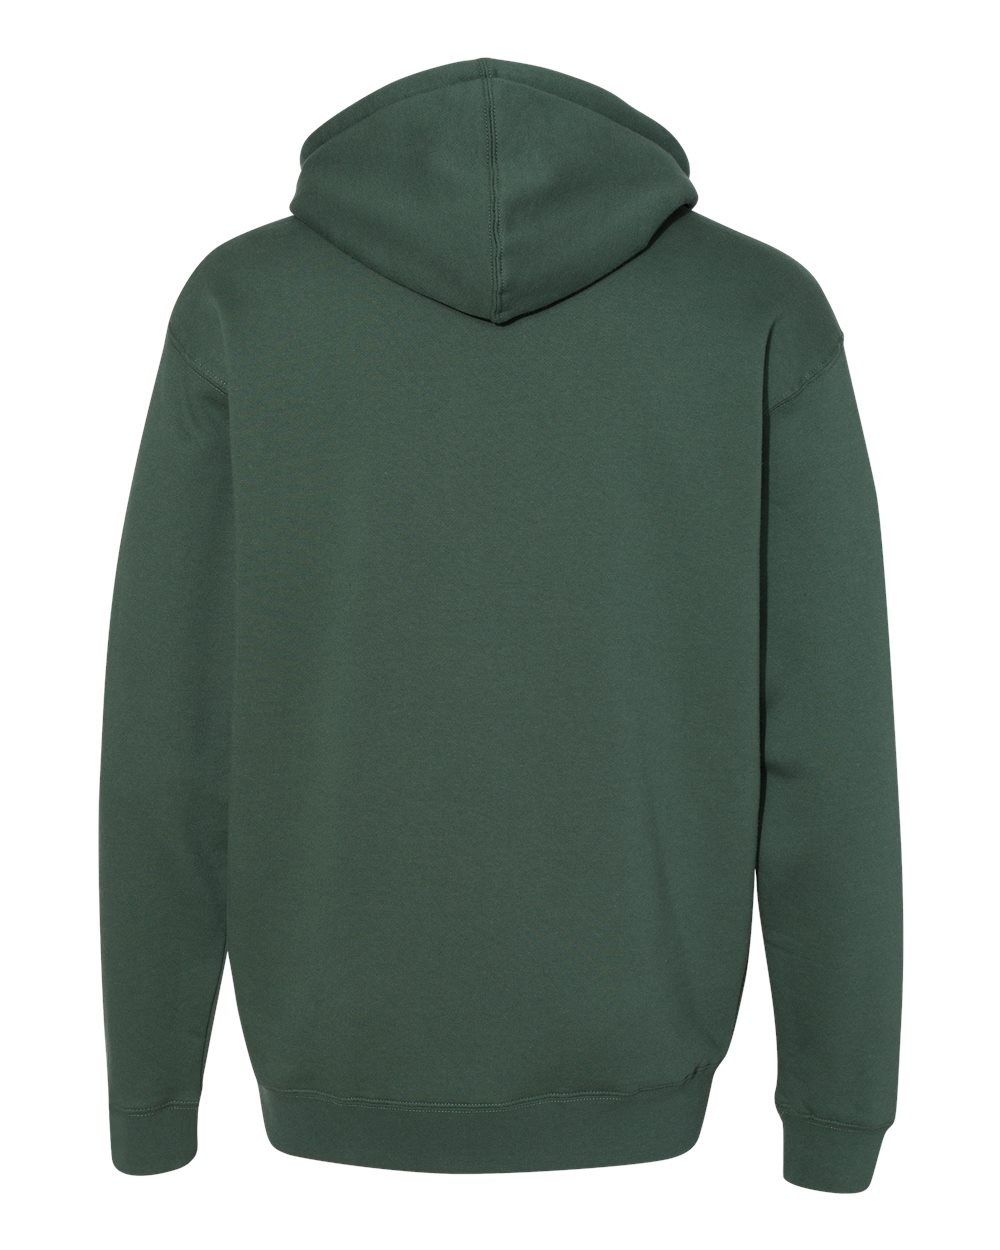 Independent-Trading-Co-Mens-Hooded-Pullover-Sweatshirt-IND4000-up-to-3XL miniature 7